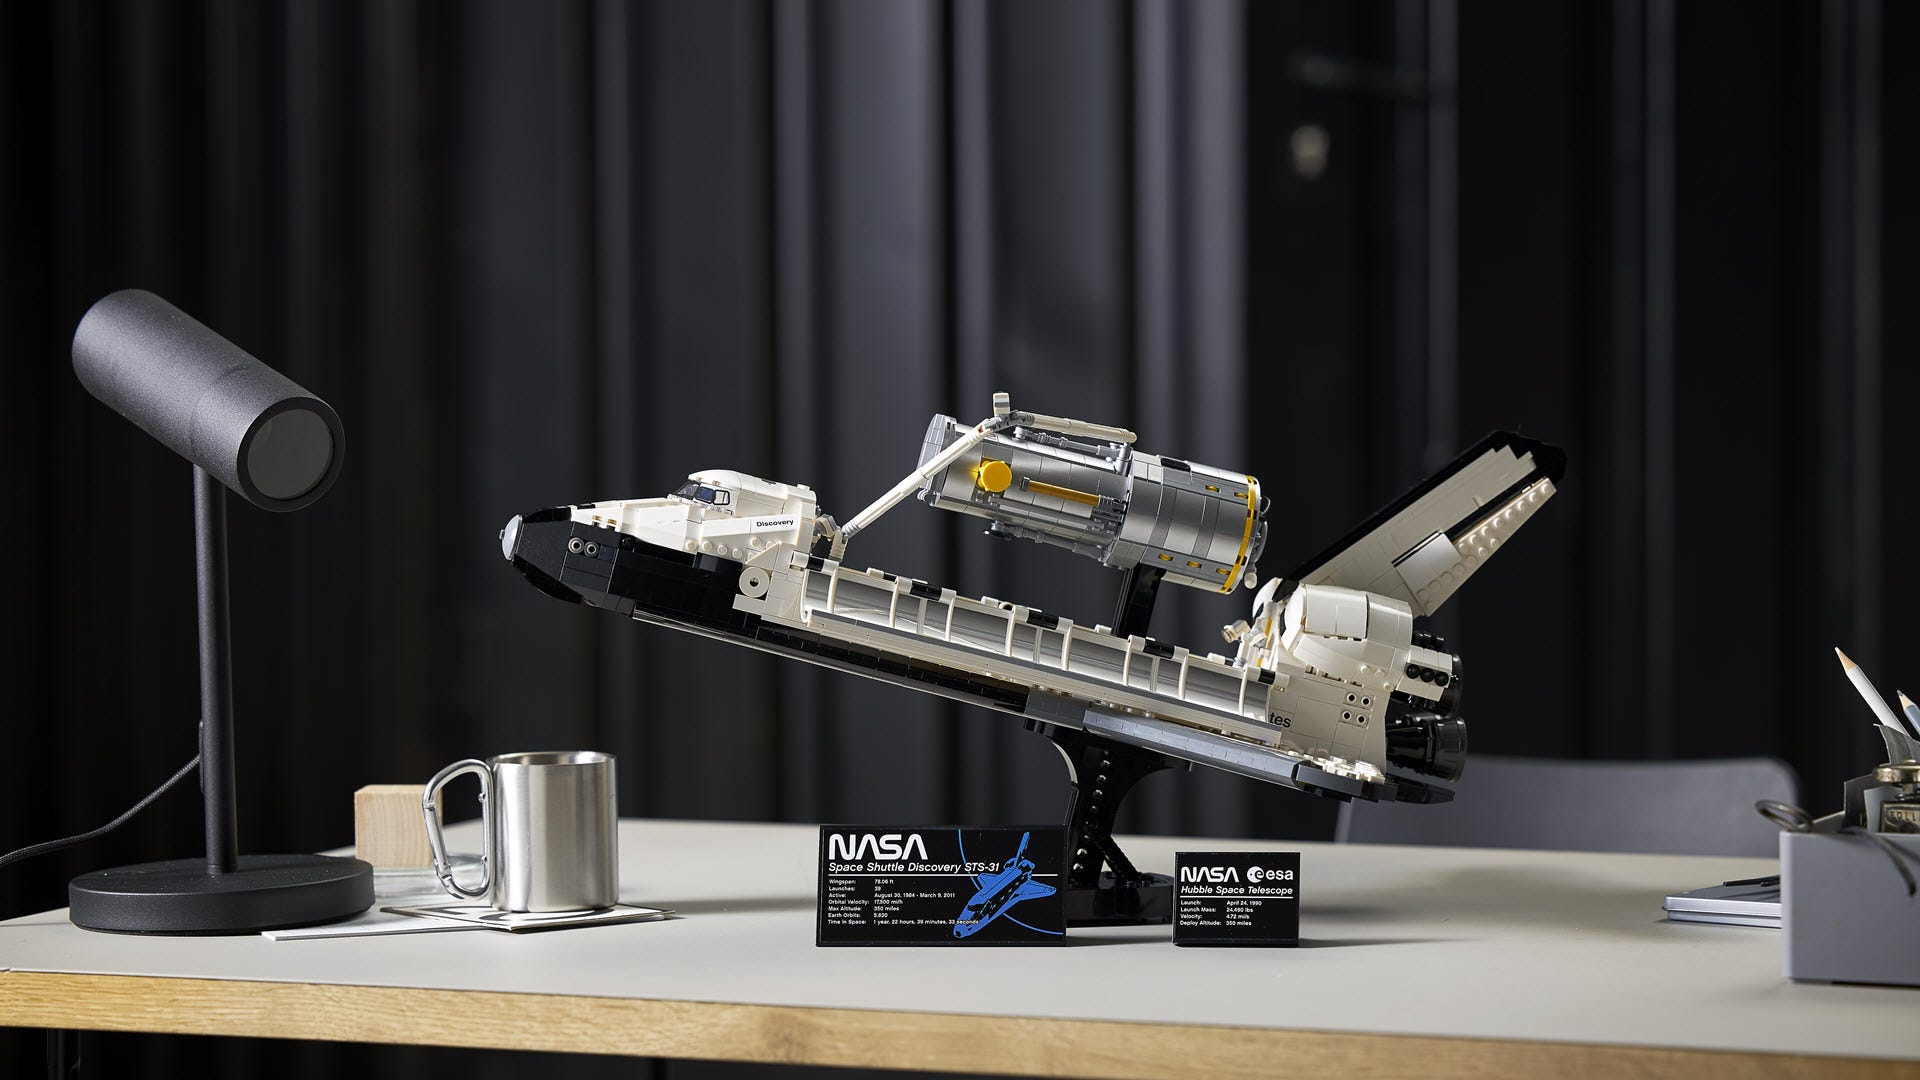 A closeup of the LEGO Space Ship Discovery, holding a Hubble Telescope